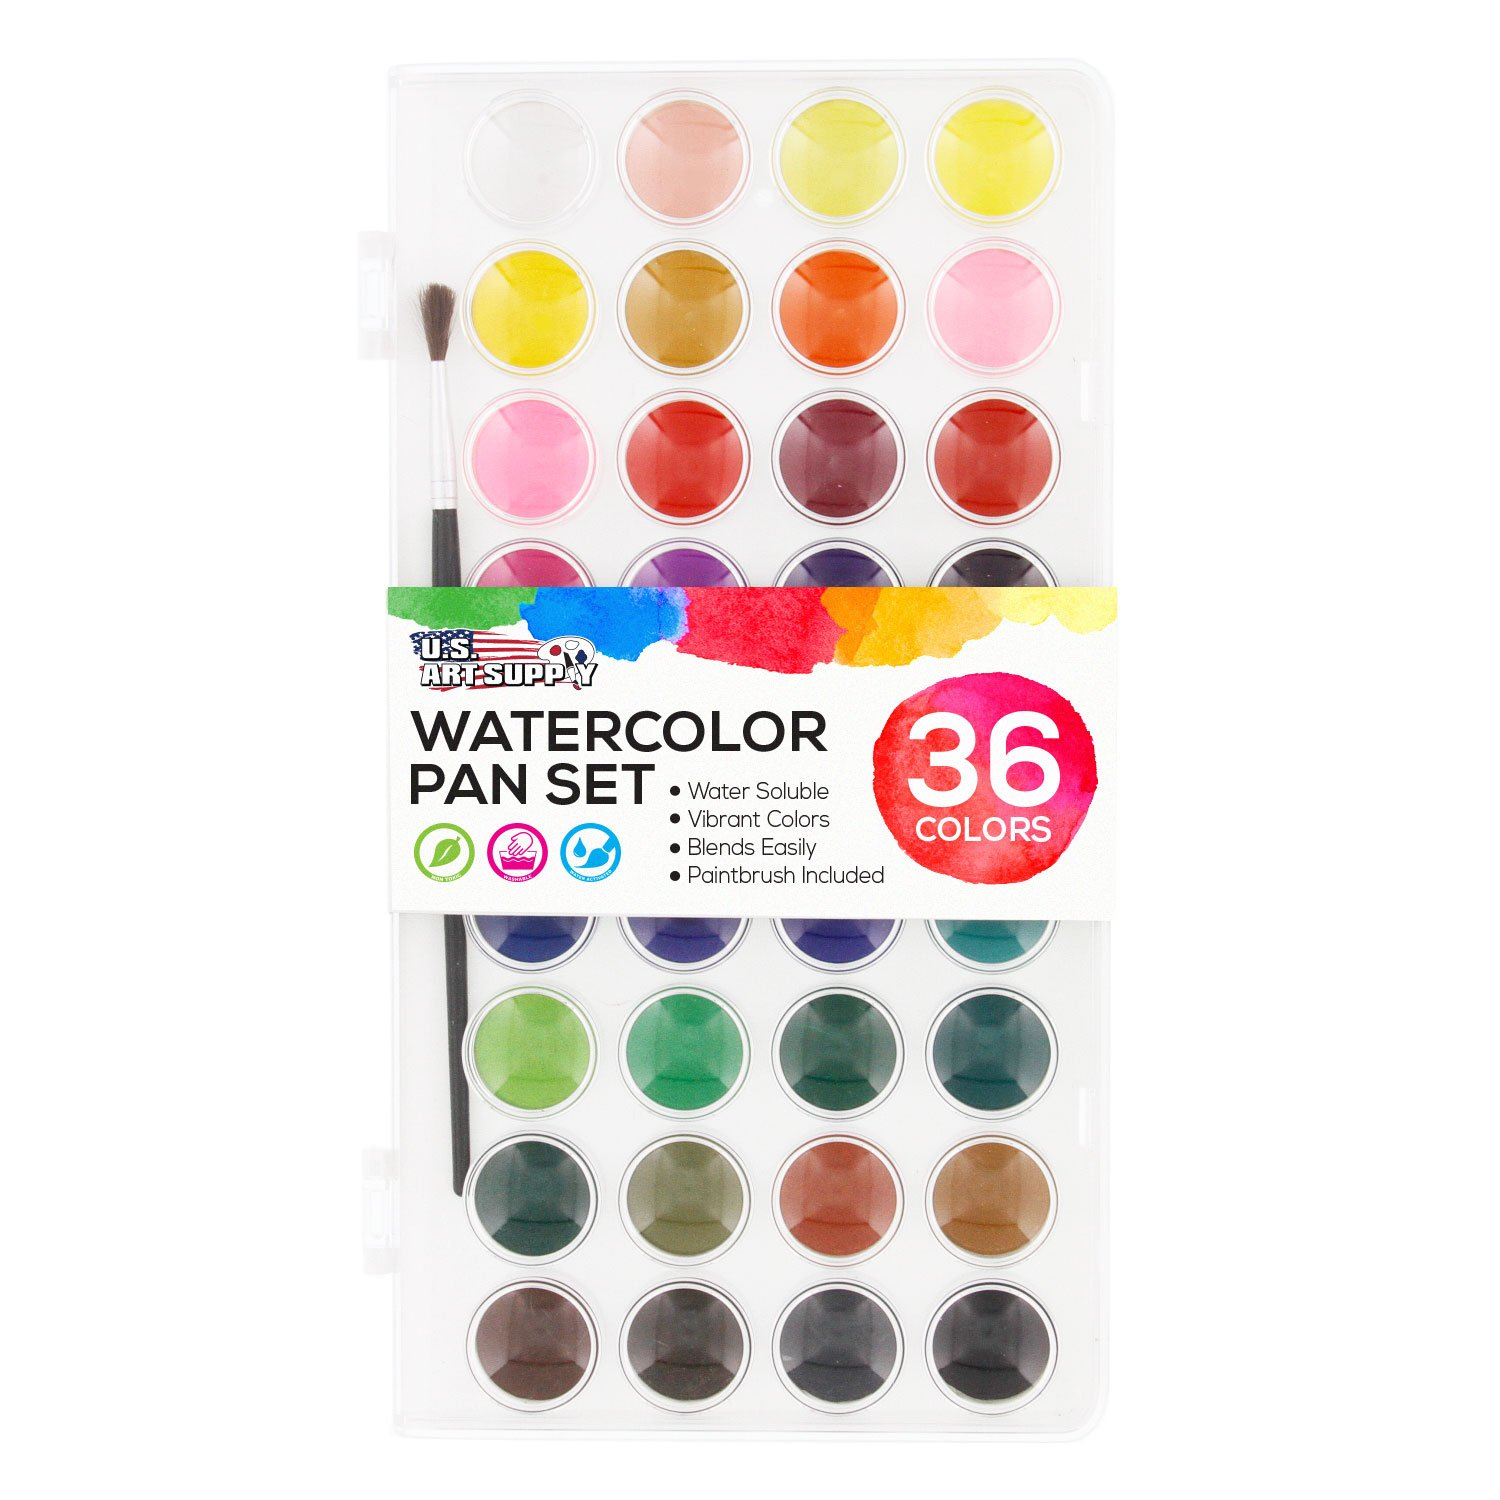 U.S. Art Supply 36 Color Watercolor Artist Paint Set